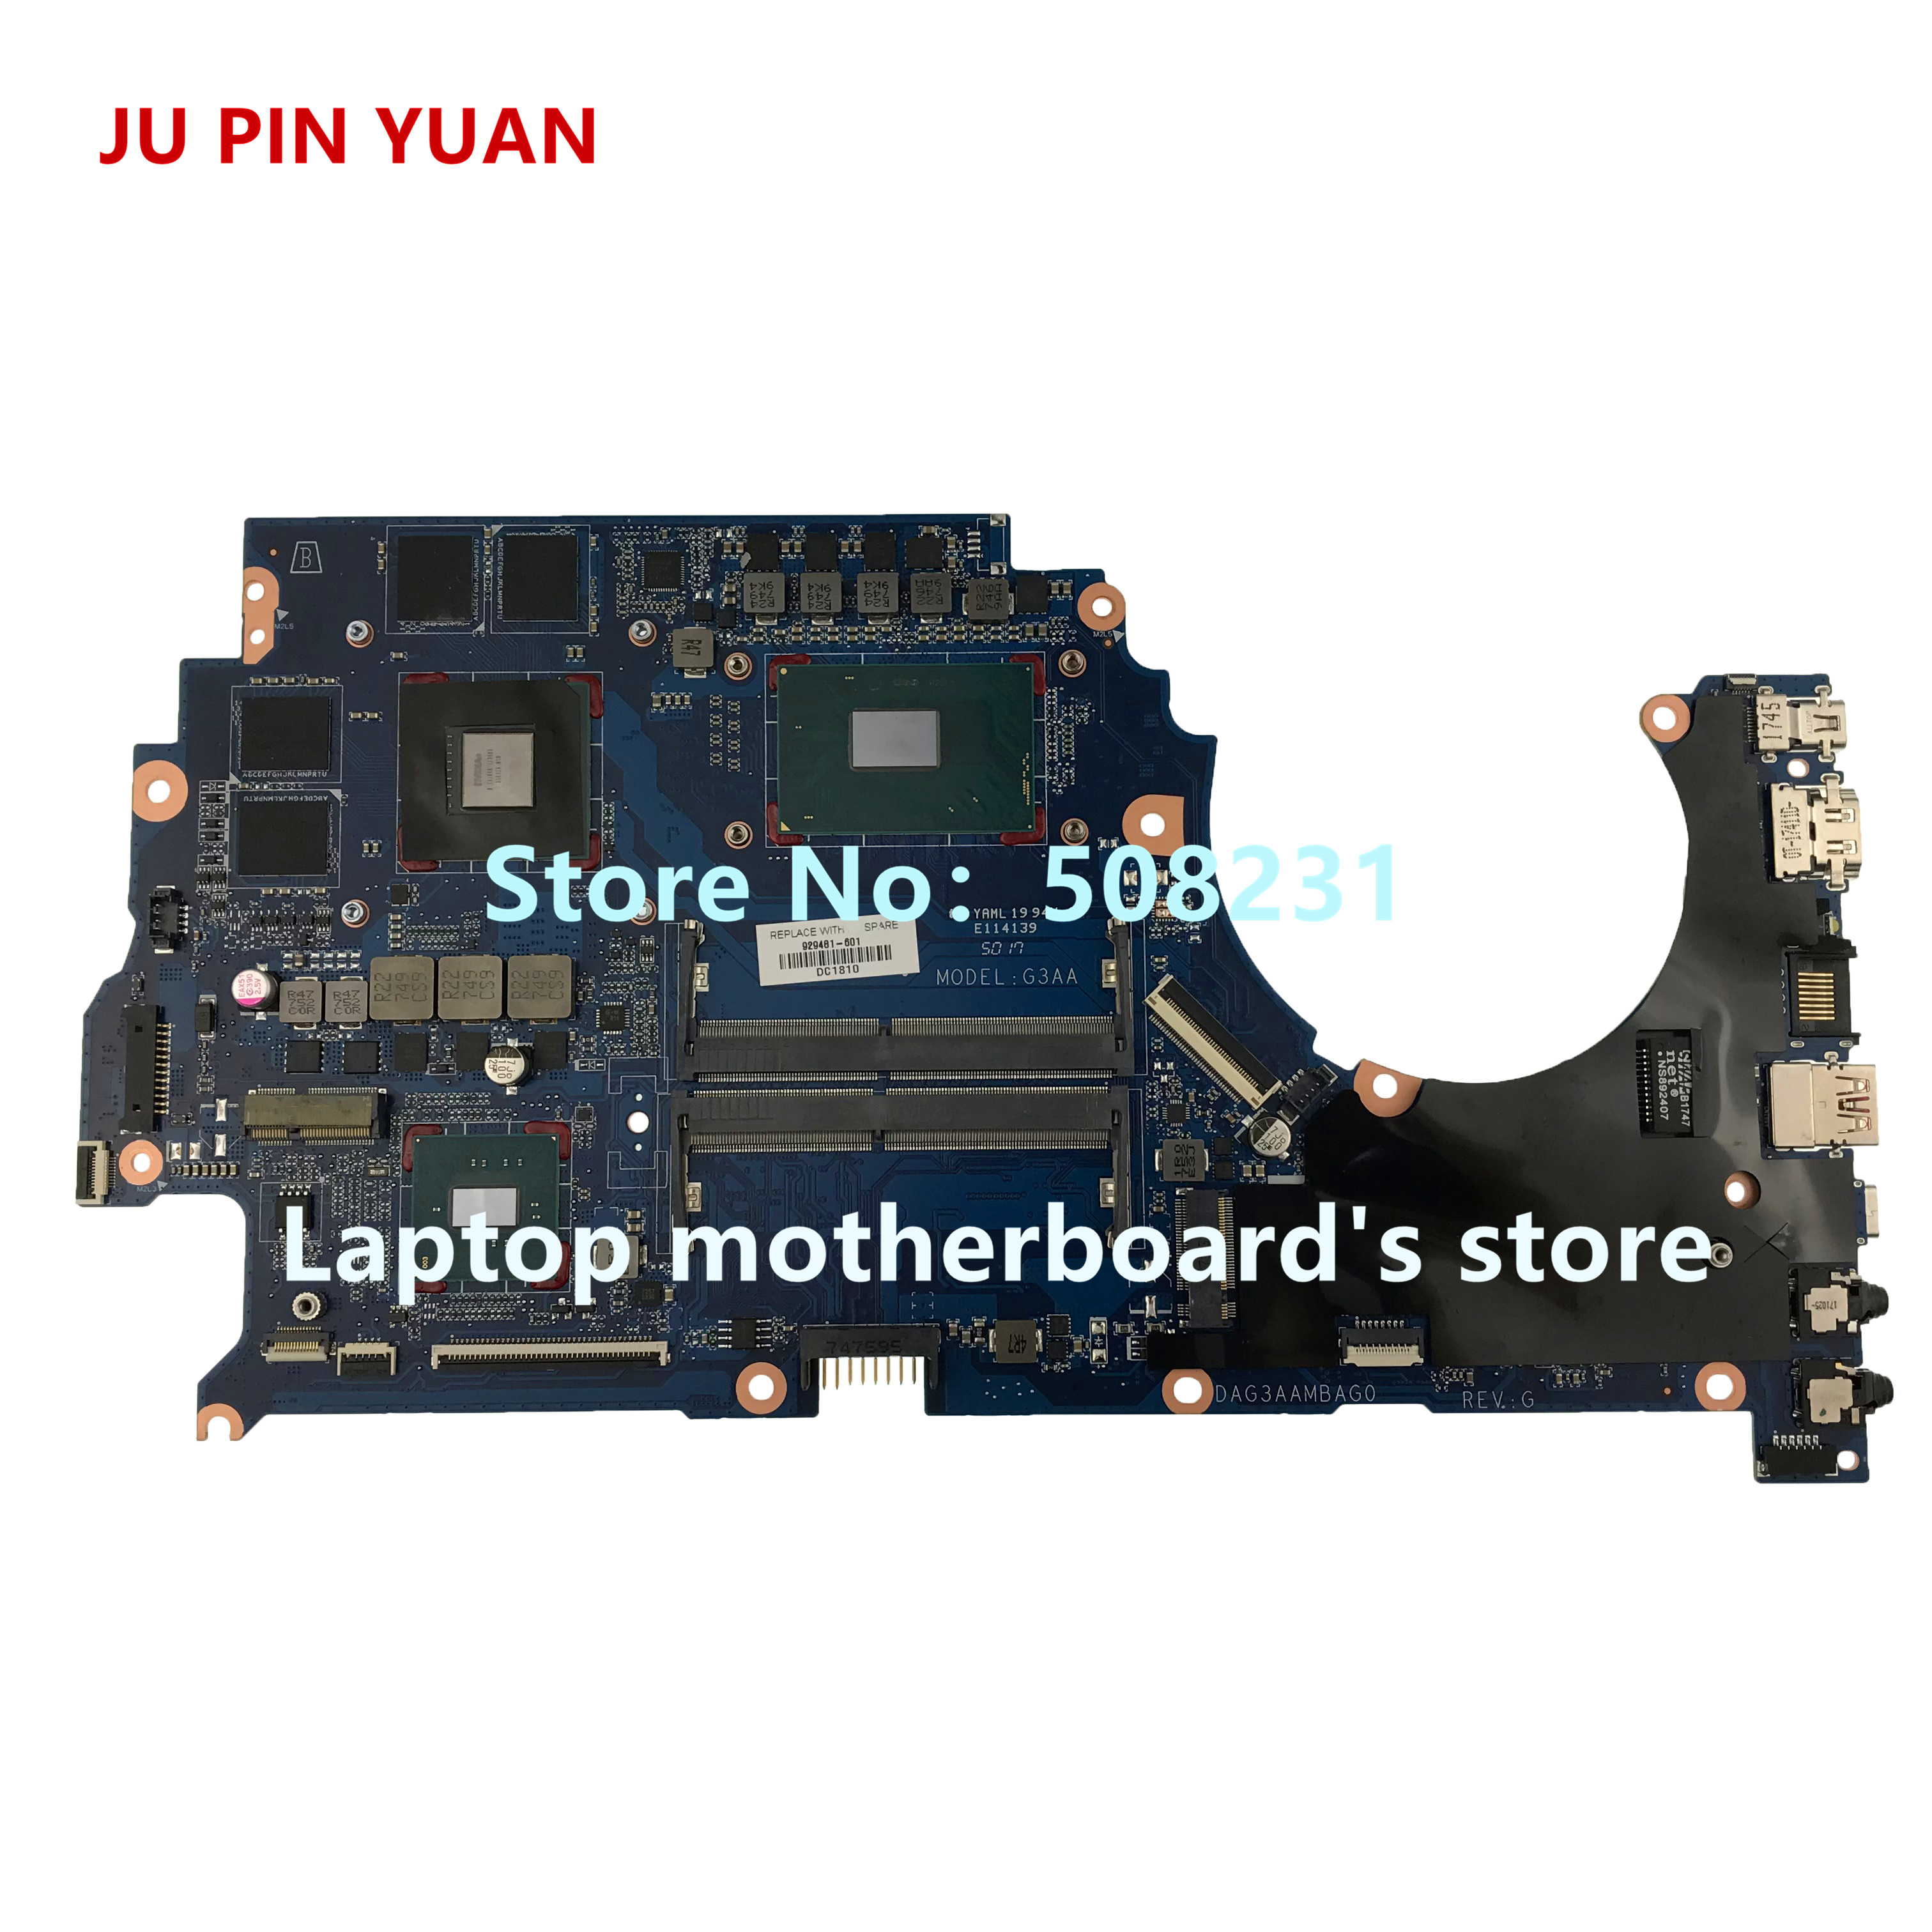 JU PIN YUAN 929481 601 G3AA DAG3AAMBAE0 motherboard For OMEN by HP Laptop 15 ce Notebook